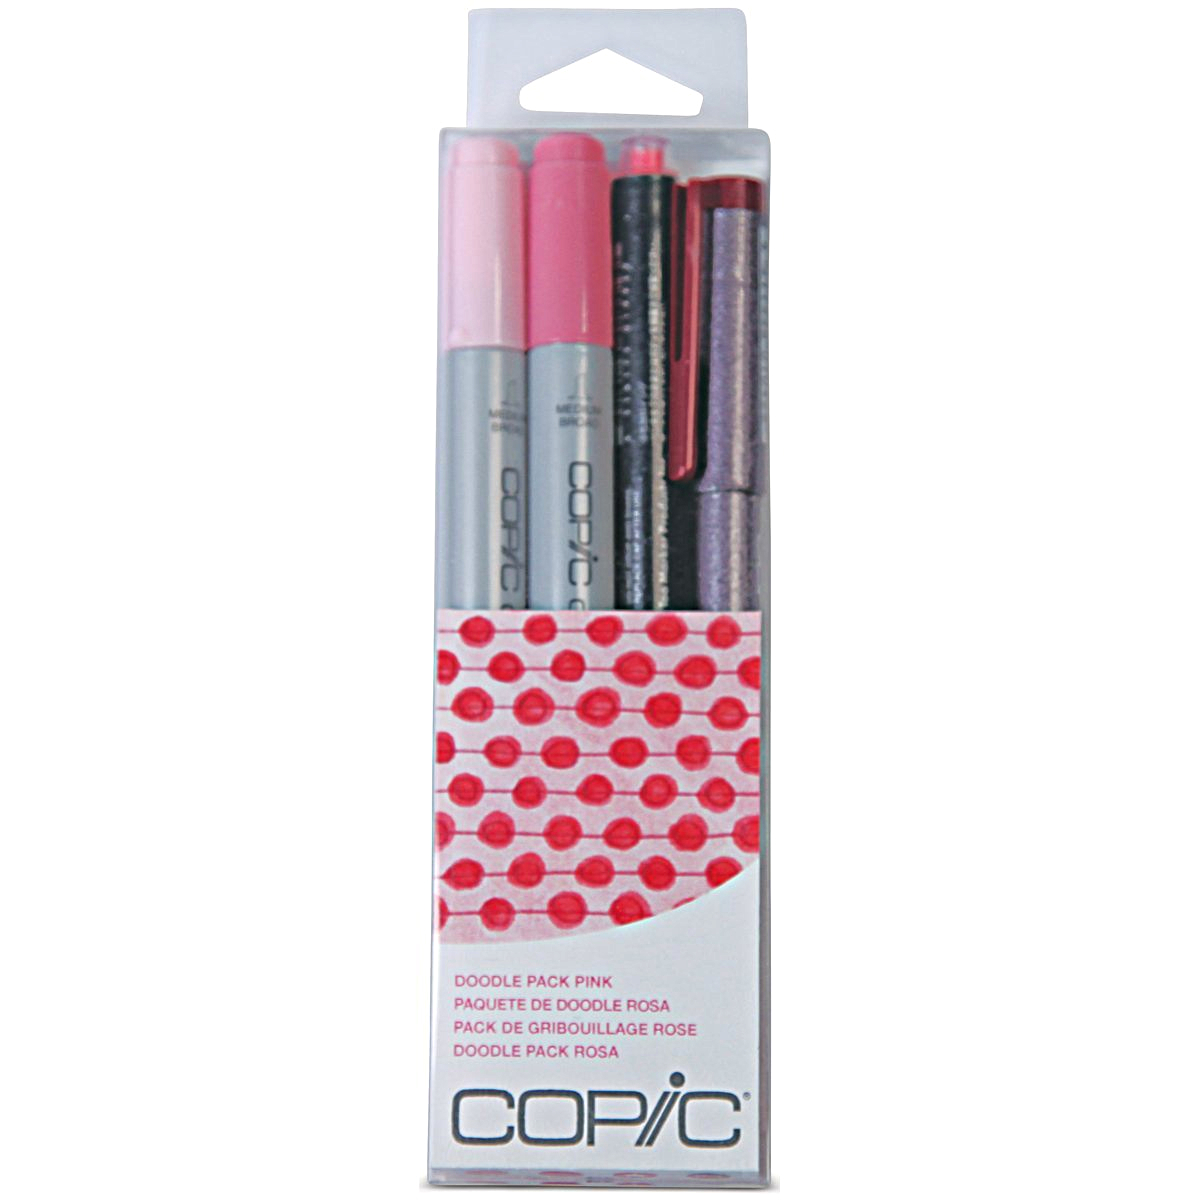 Copic Doodle Pack Pink